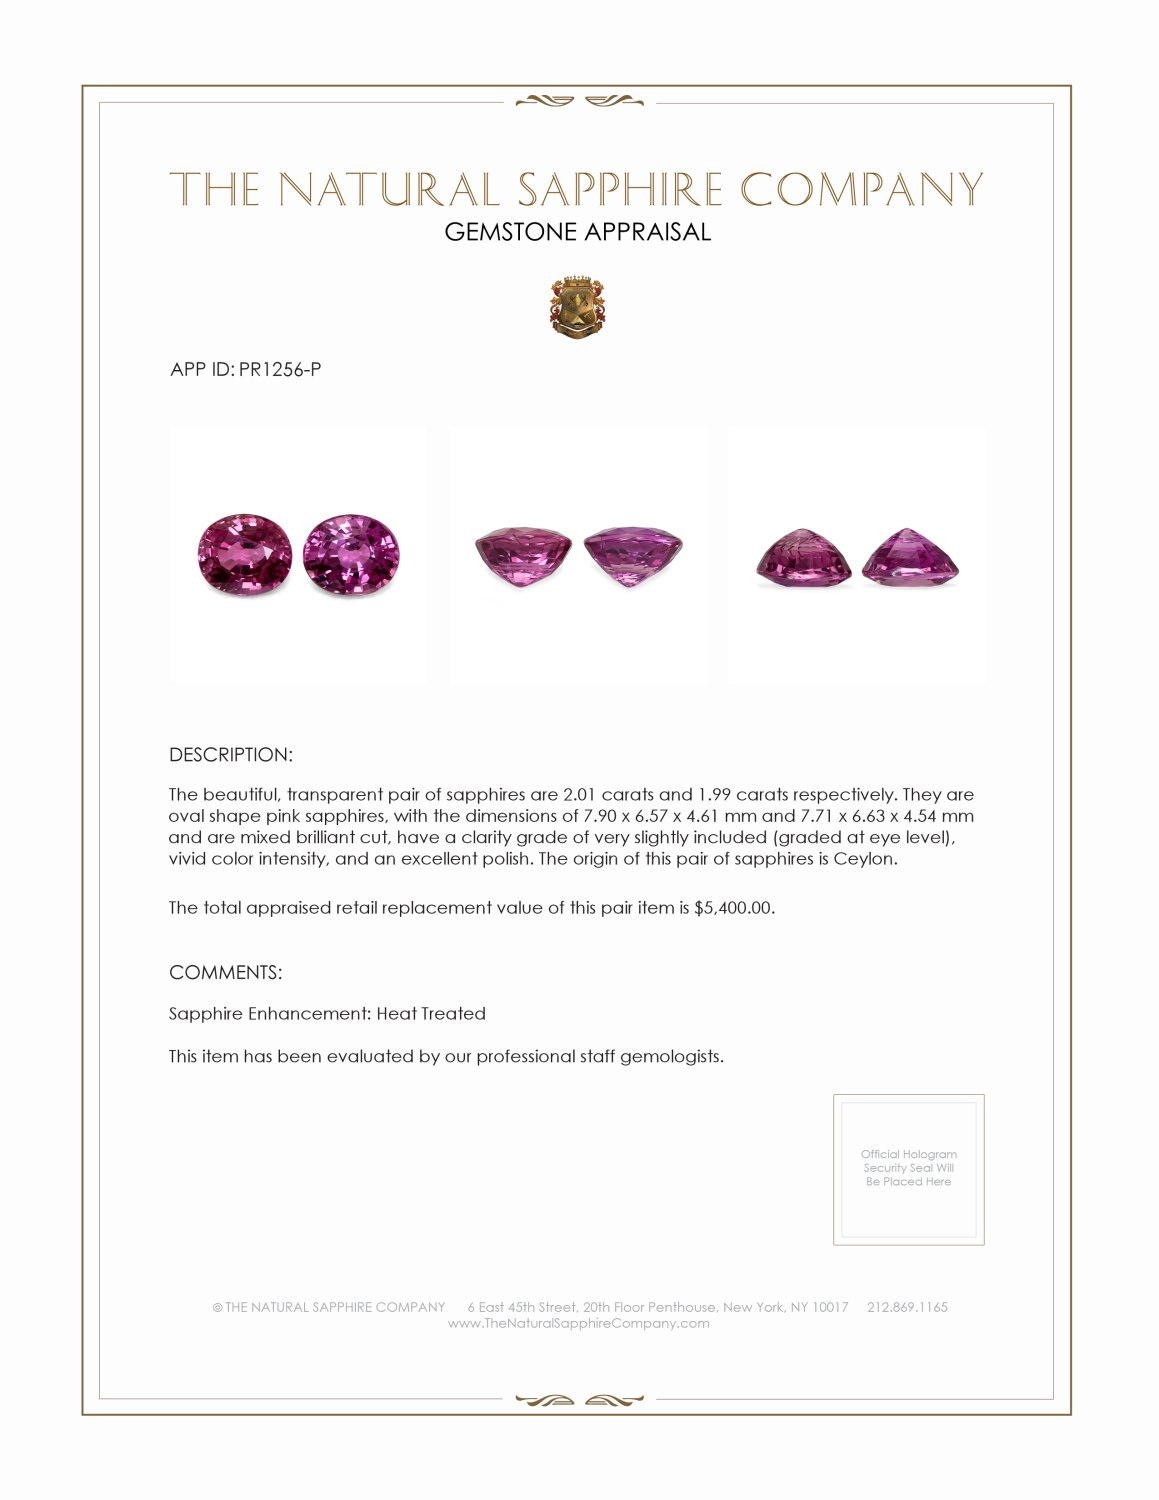 4.00ctw Natural Pink Sapphires  PR1256-P Certification 2